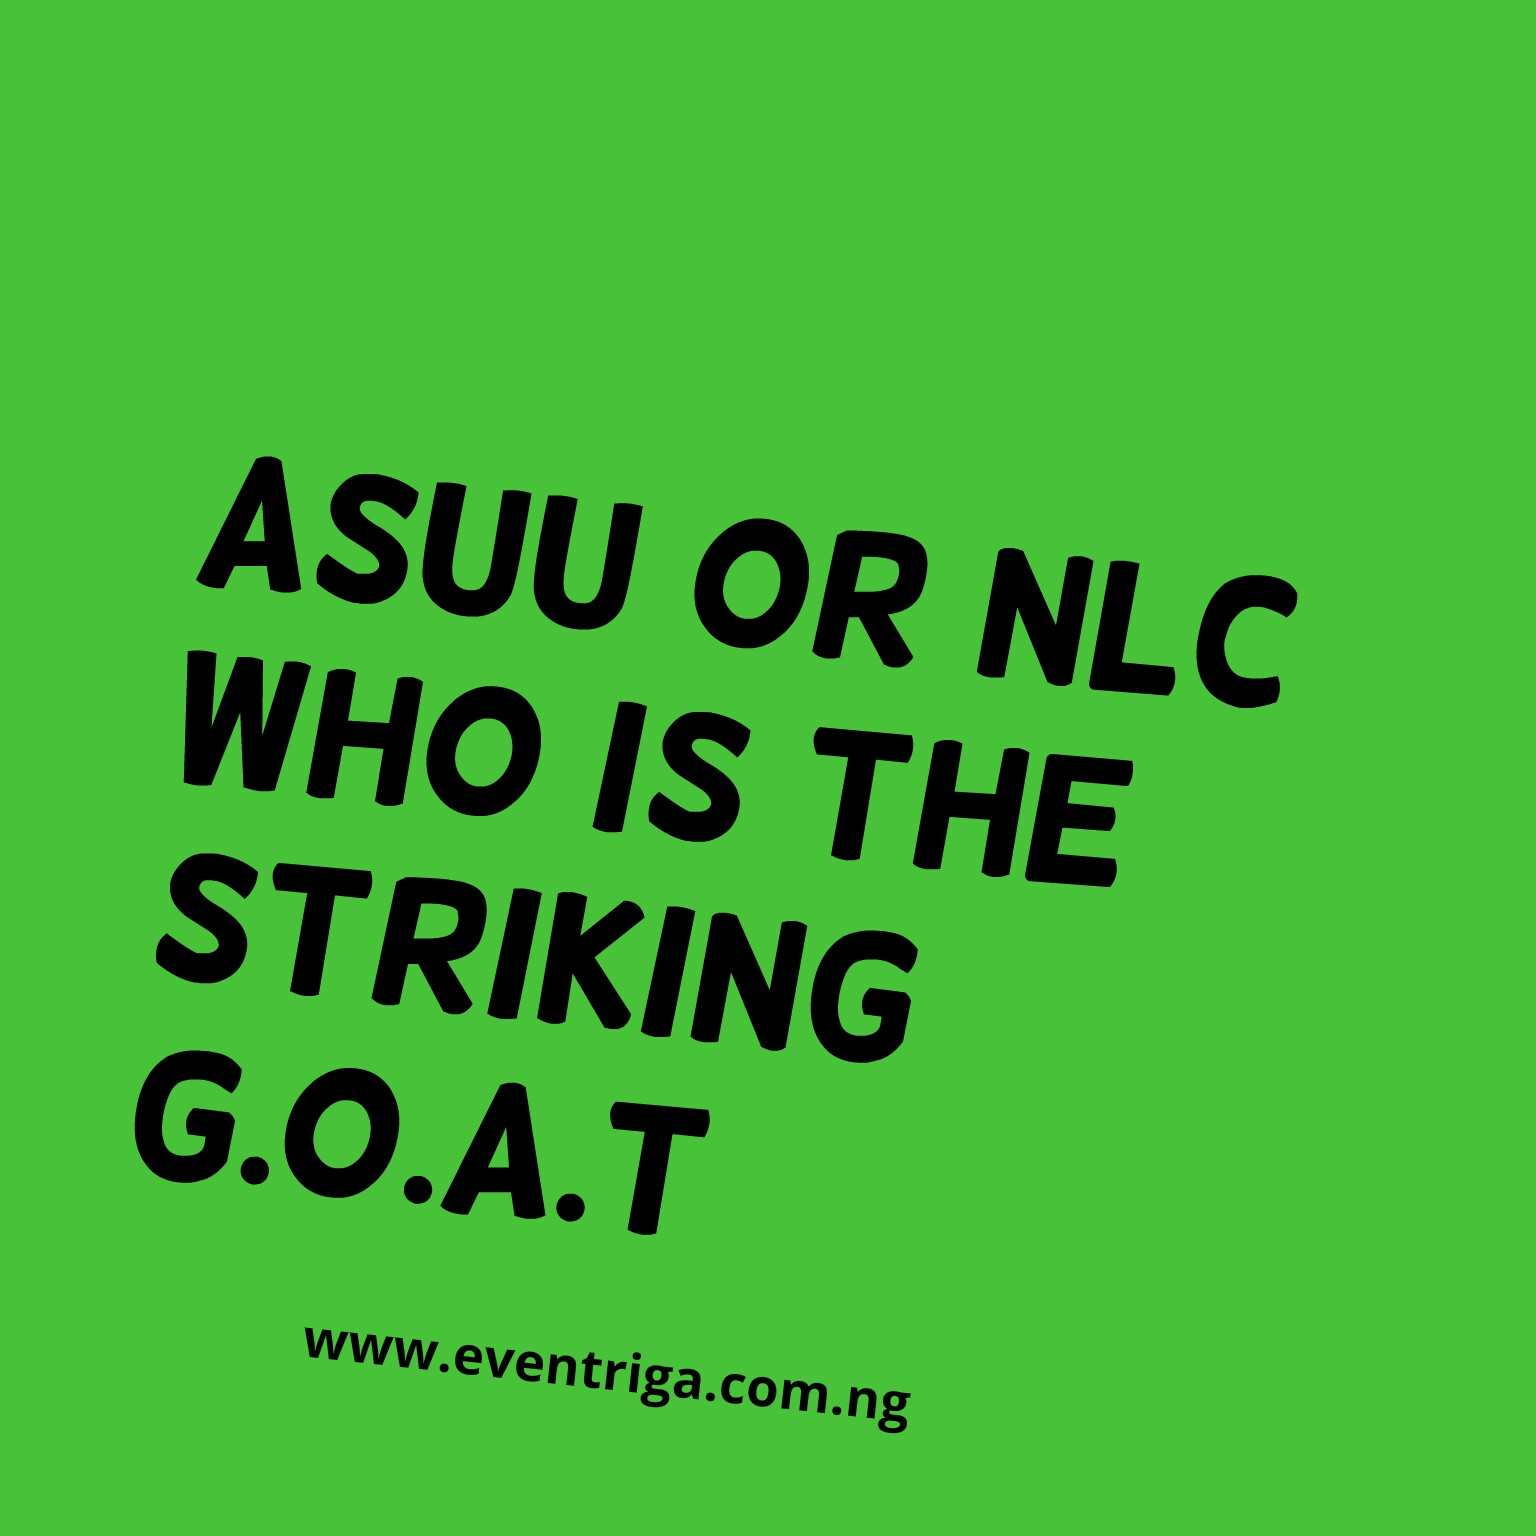 ASUU or NLC